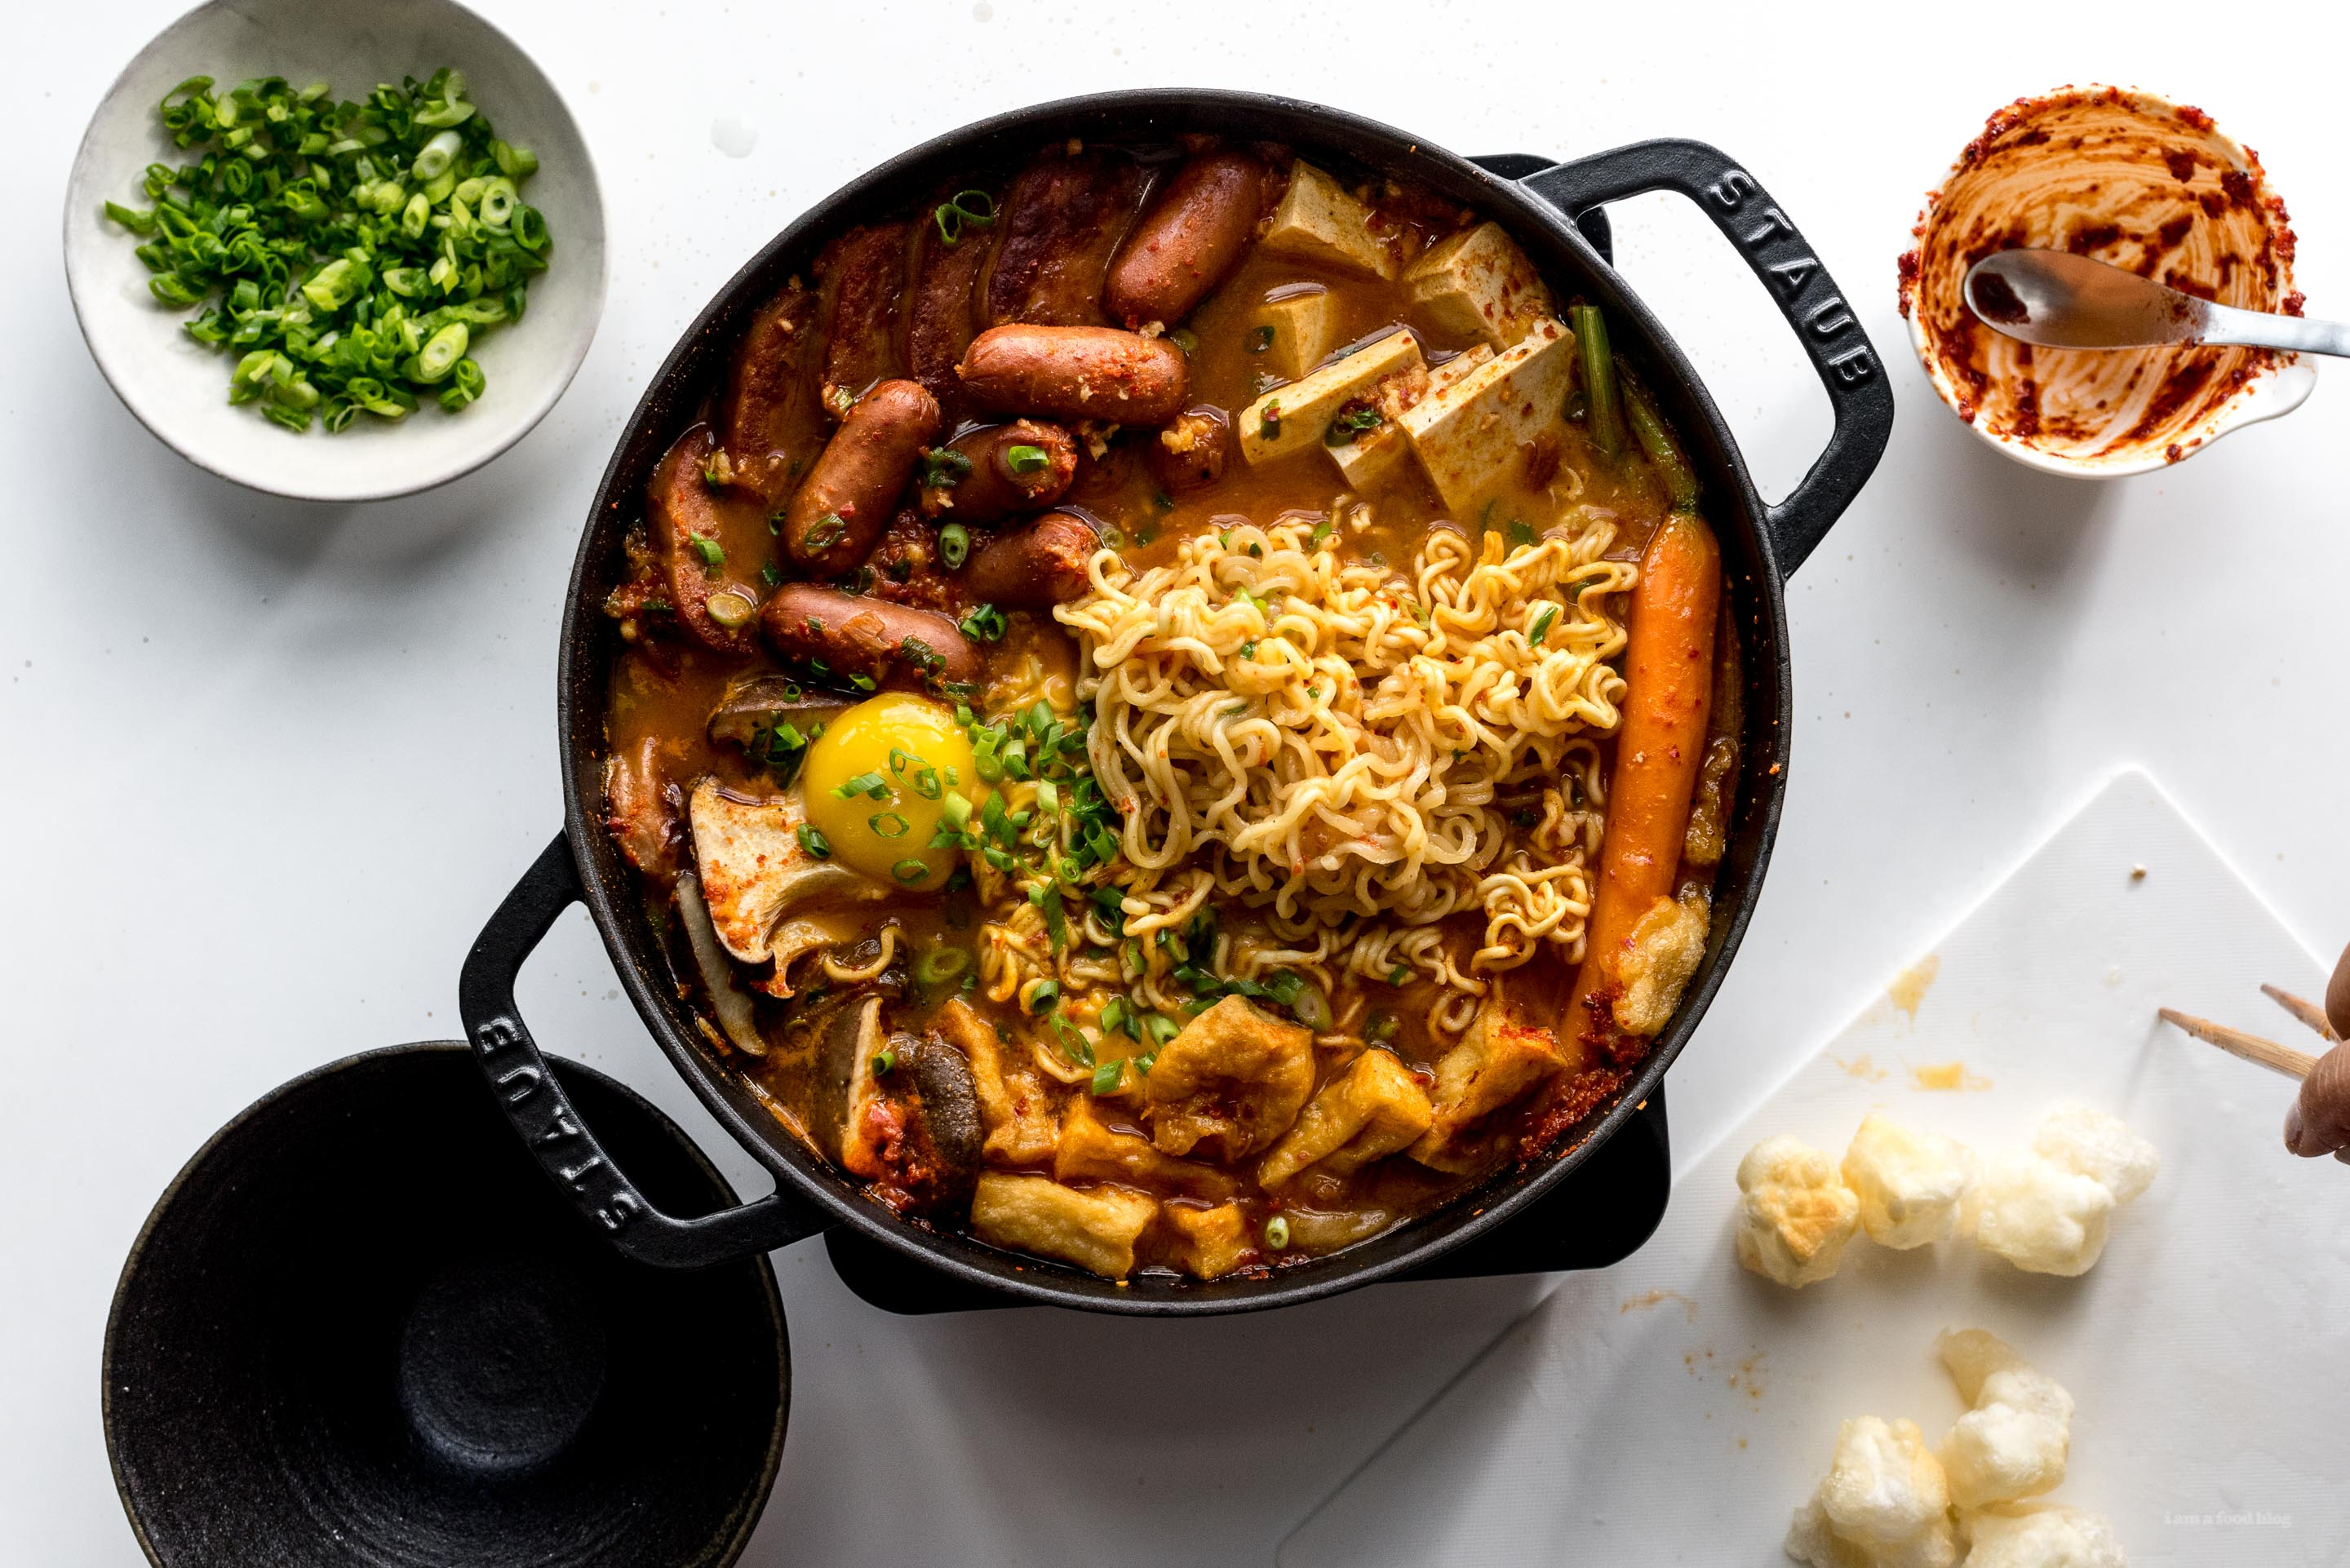 Budae jjigae korean army stew recipe i am a food blog i am a food blog it feels like fall has arrived and i have the perfect dish to get all warm and cozy with korean army stew i love anything soupy and stewy when its cold forumfinder Choice Image